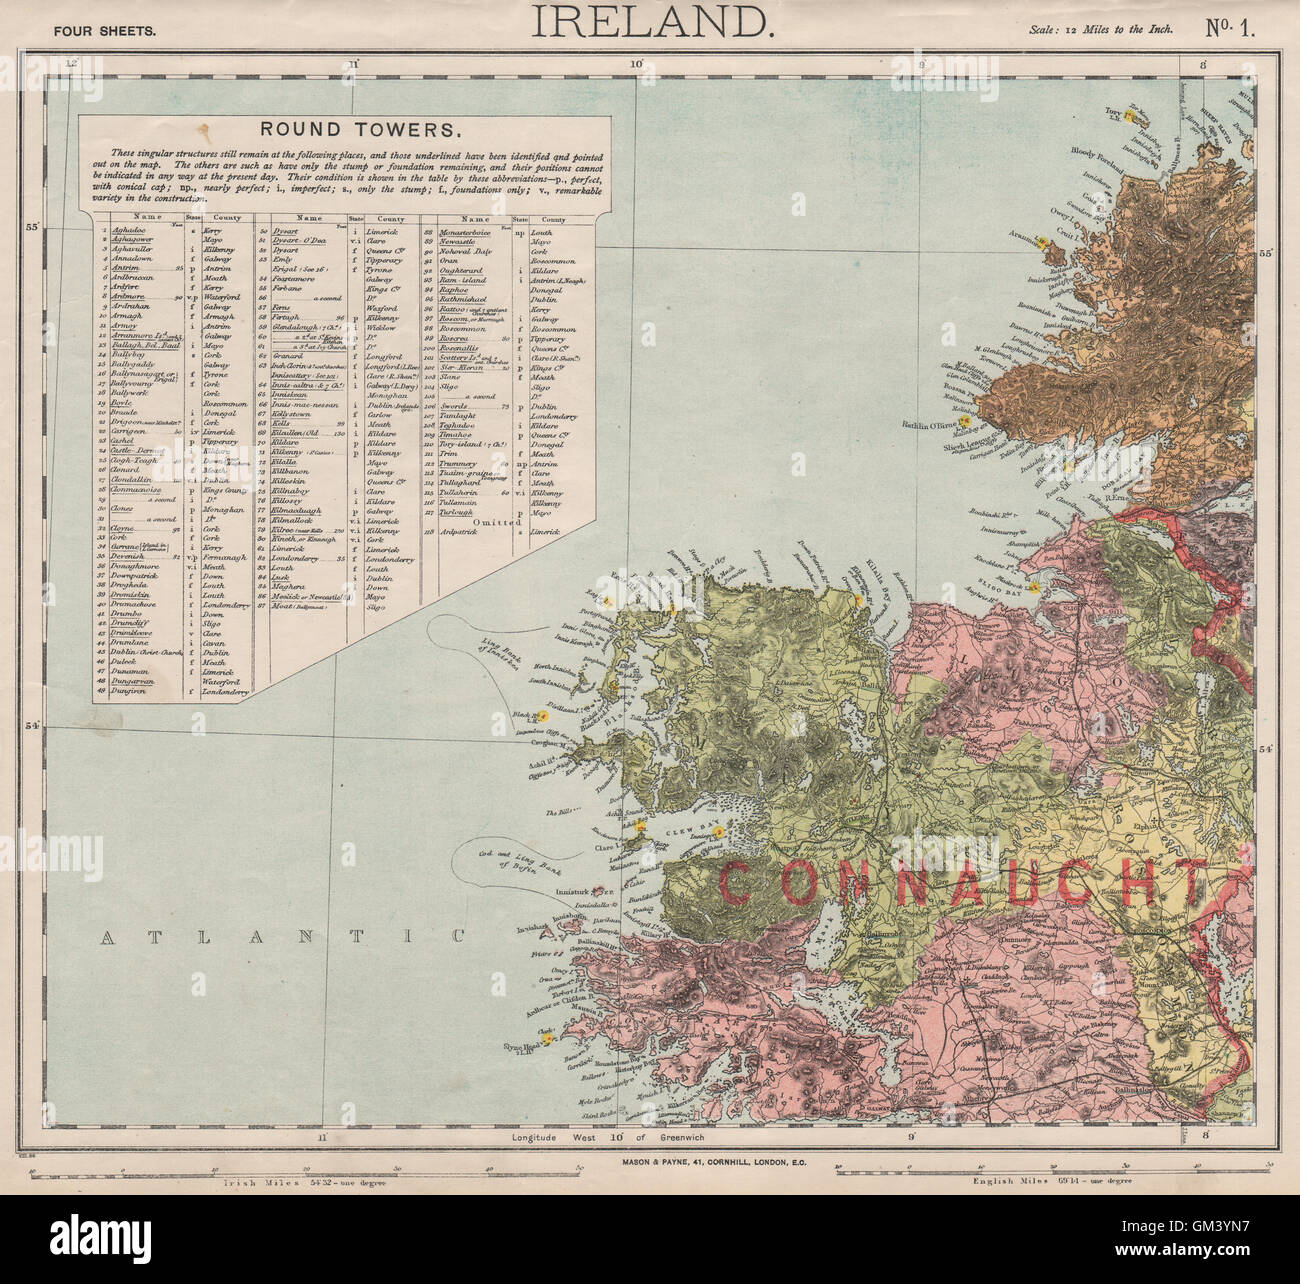 Lighthouses In Ireland Map.Nw Ireland Lighthouses Cod Ling Fishing Banks Connaught Letts